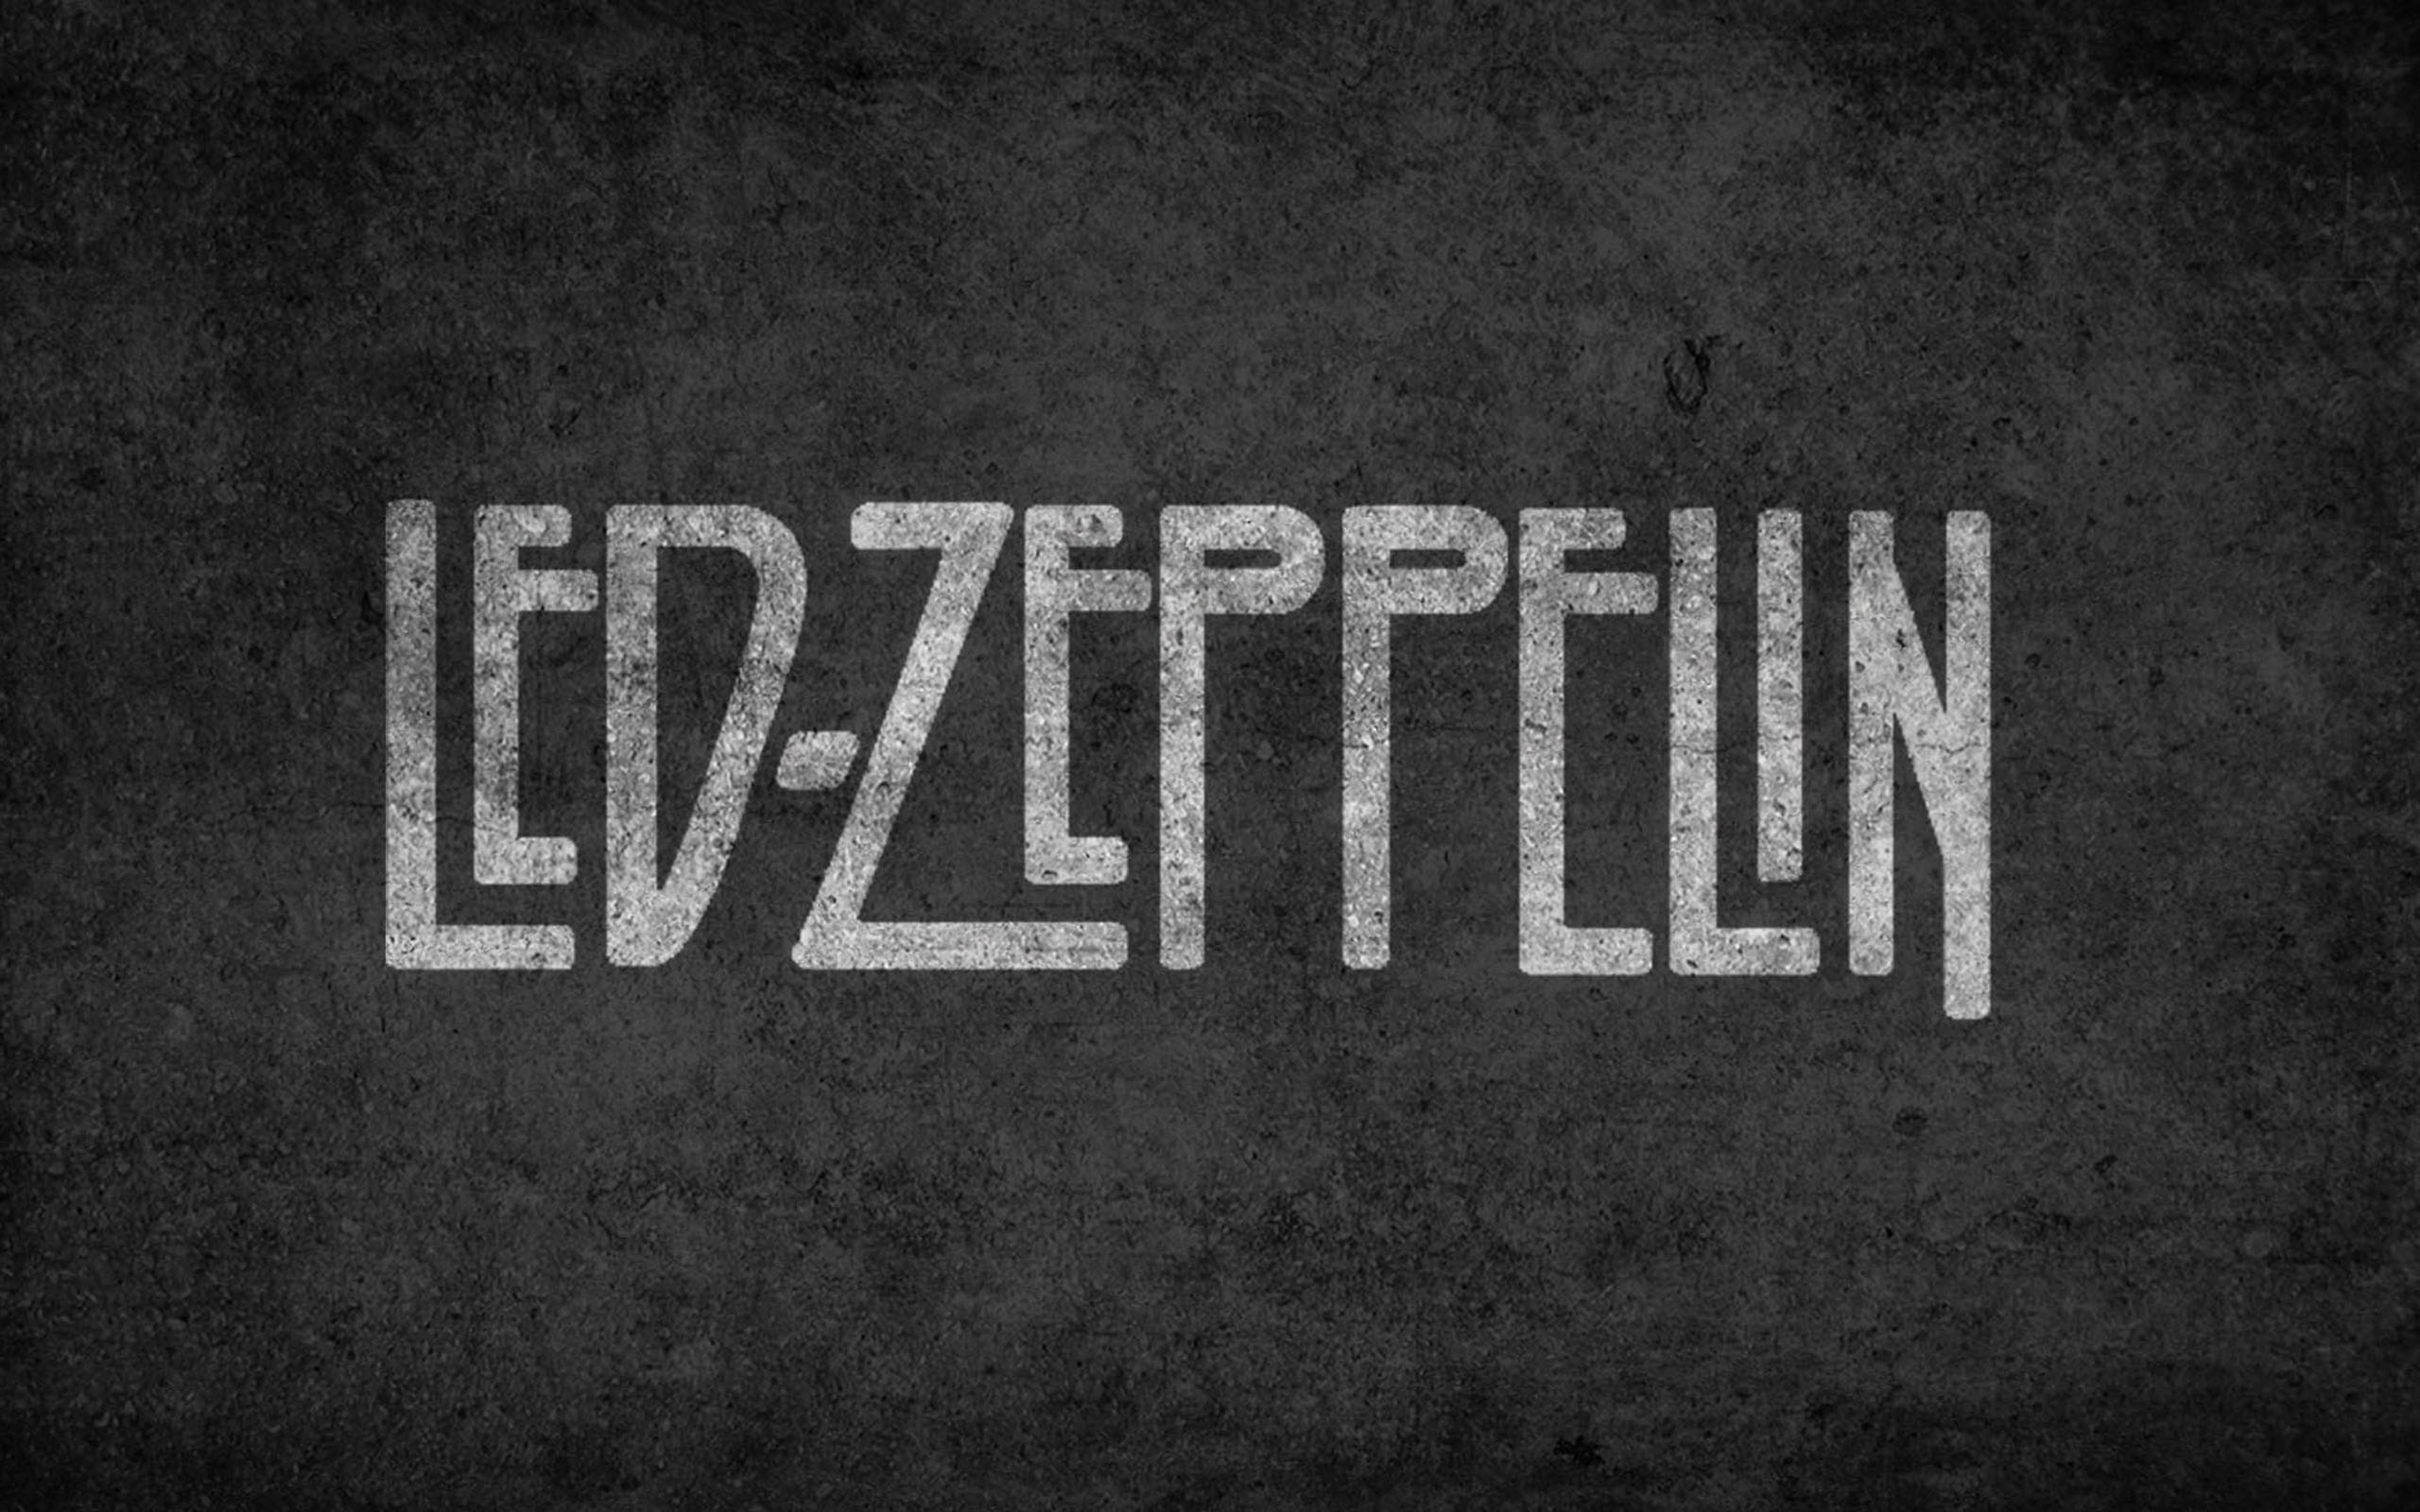 the music of led zeppelin But led zeppelin's rock'n'roll lifestyle led to tragedy: after excessive alcohol consumption in 1980, drummer john bonham choked on his vomit during his sleep that was the end of the band.